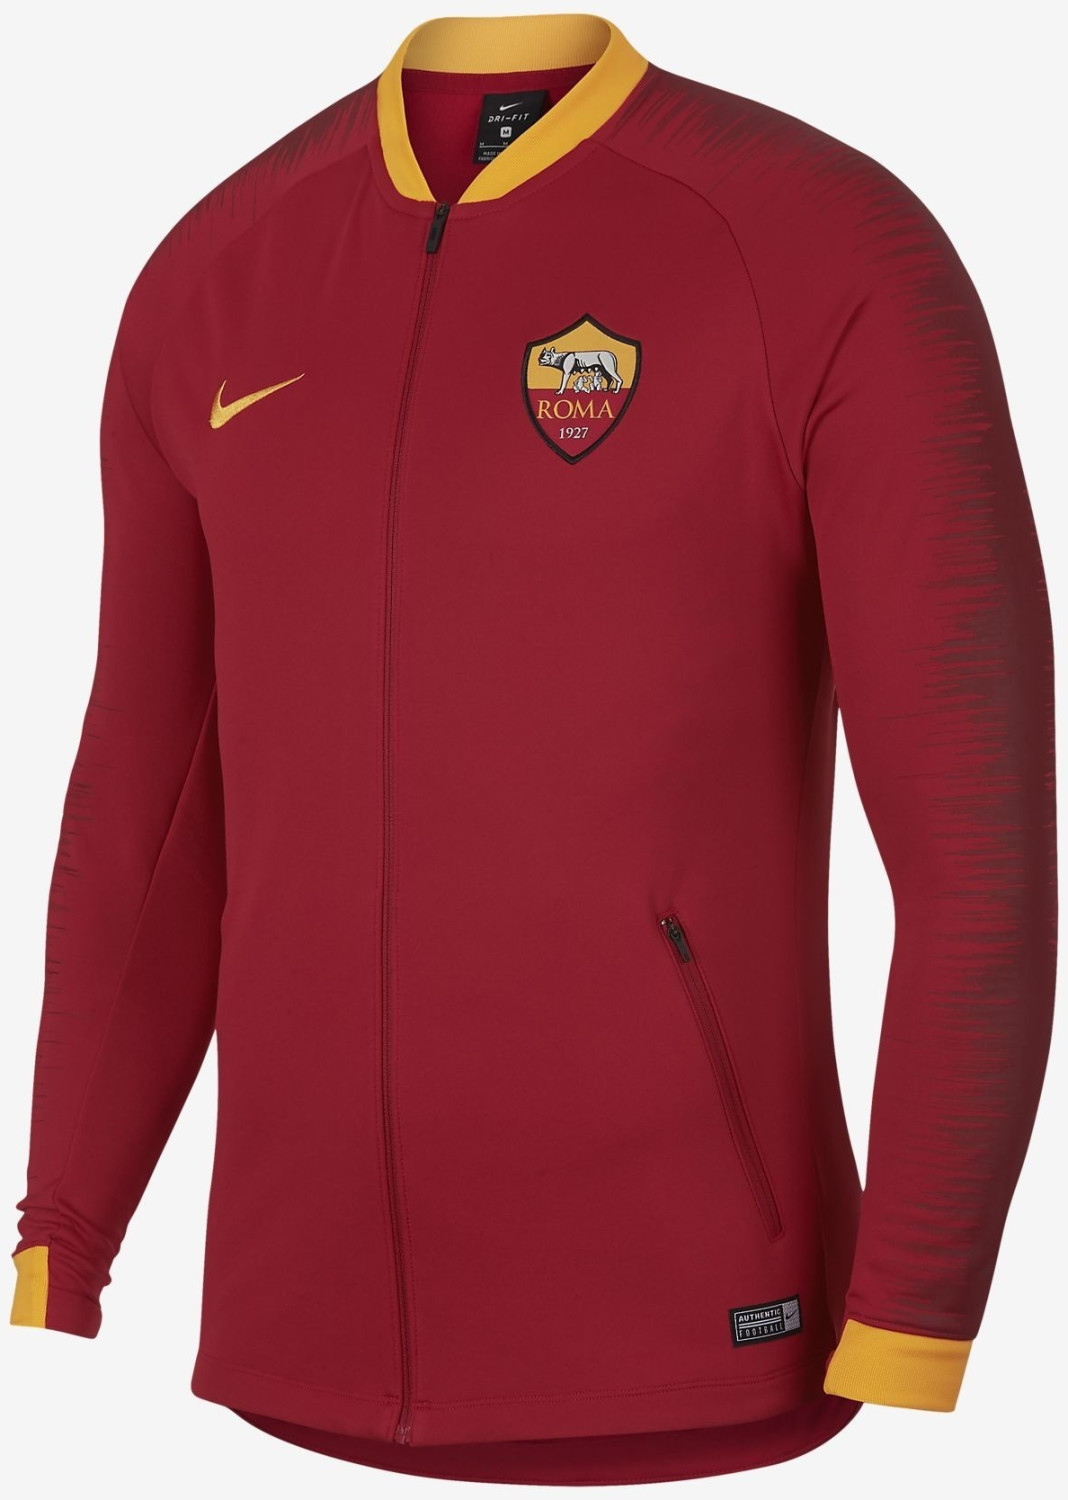 Nike A.S. Rom Anthem Jacket (920062-613) team c...